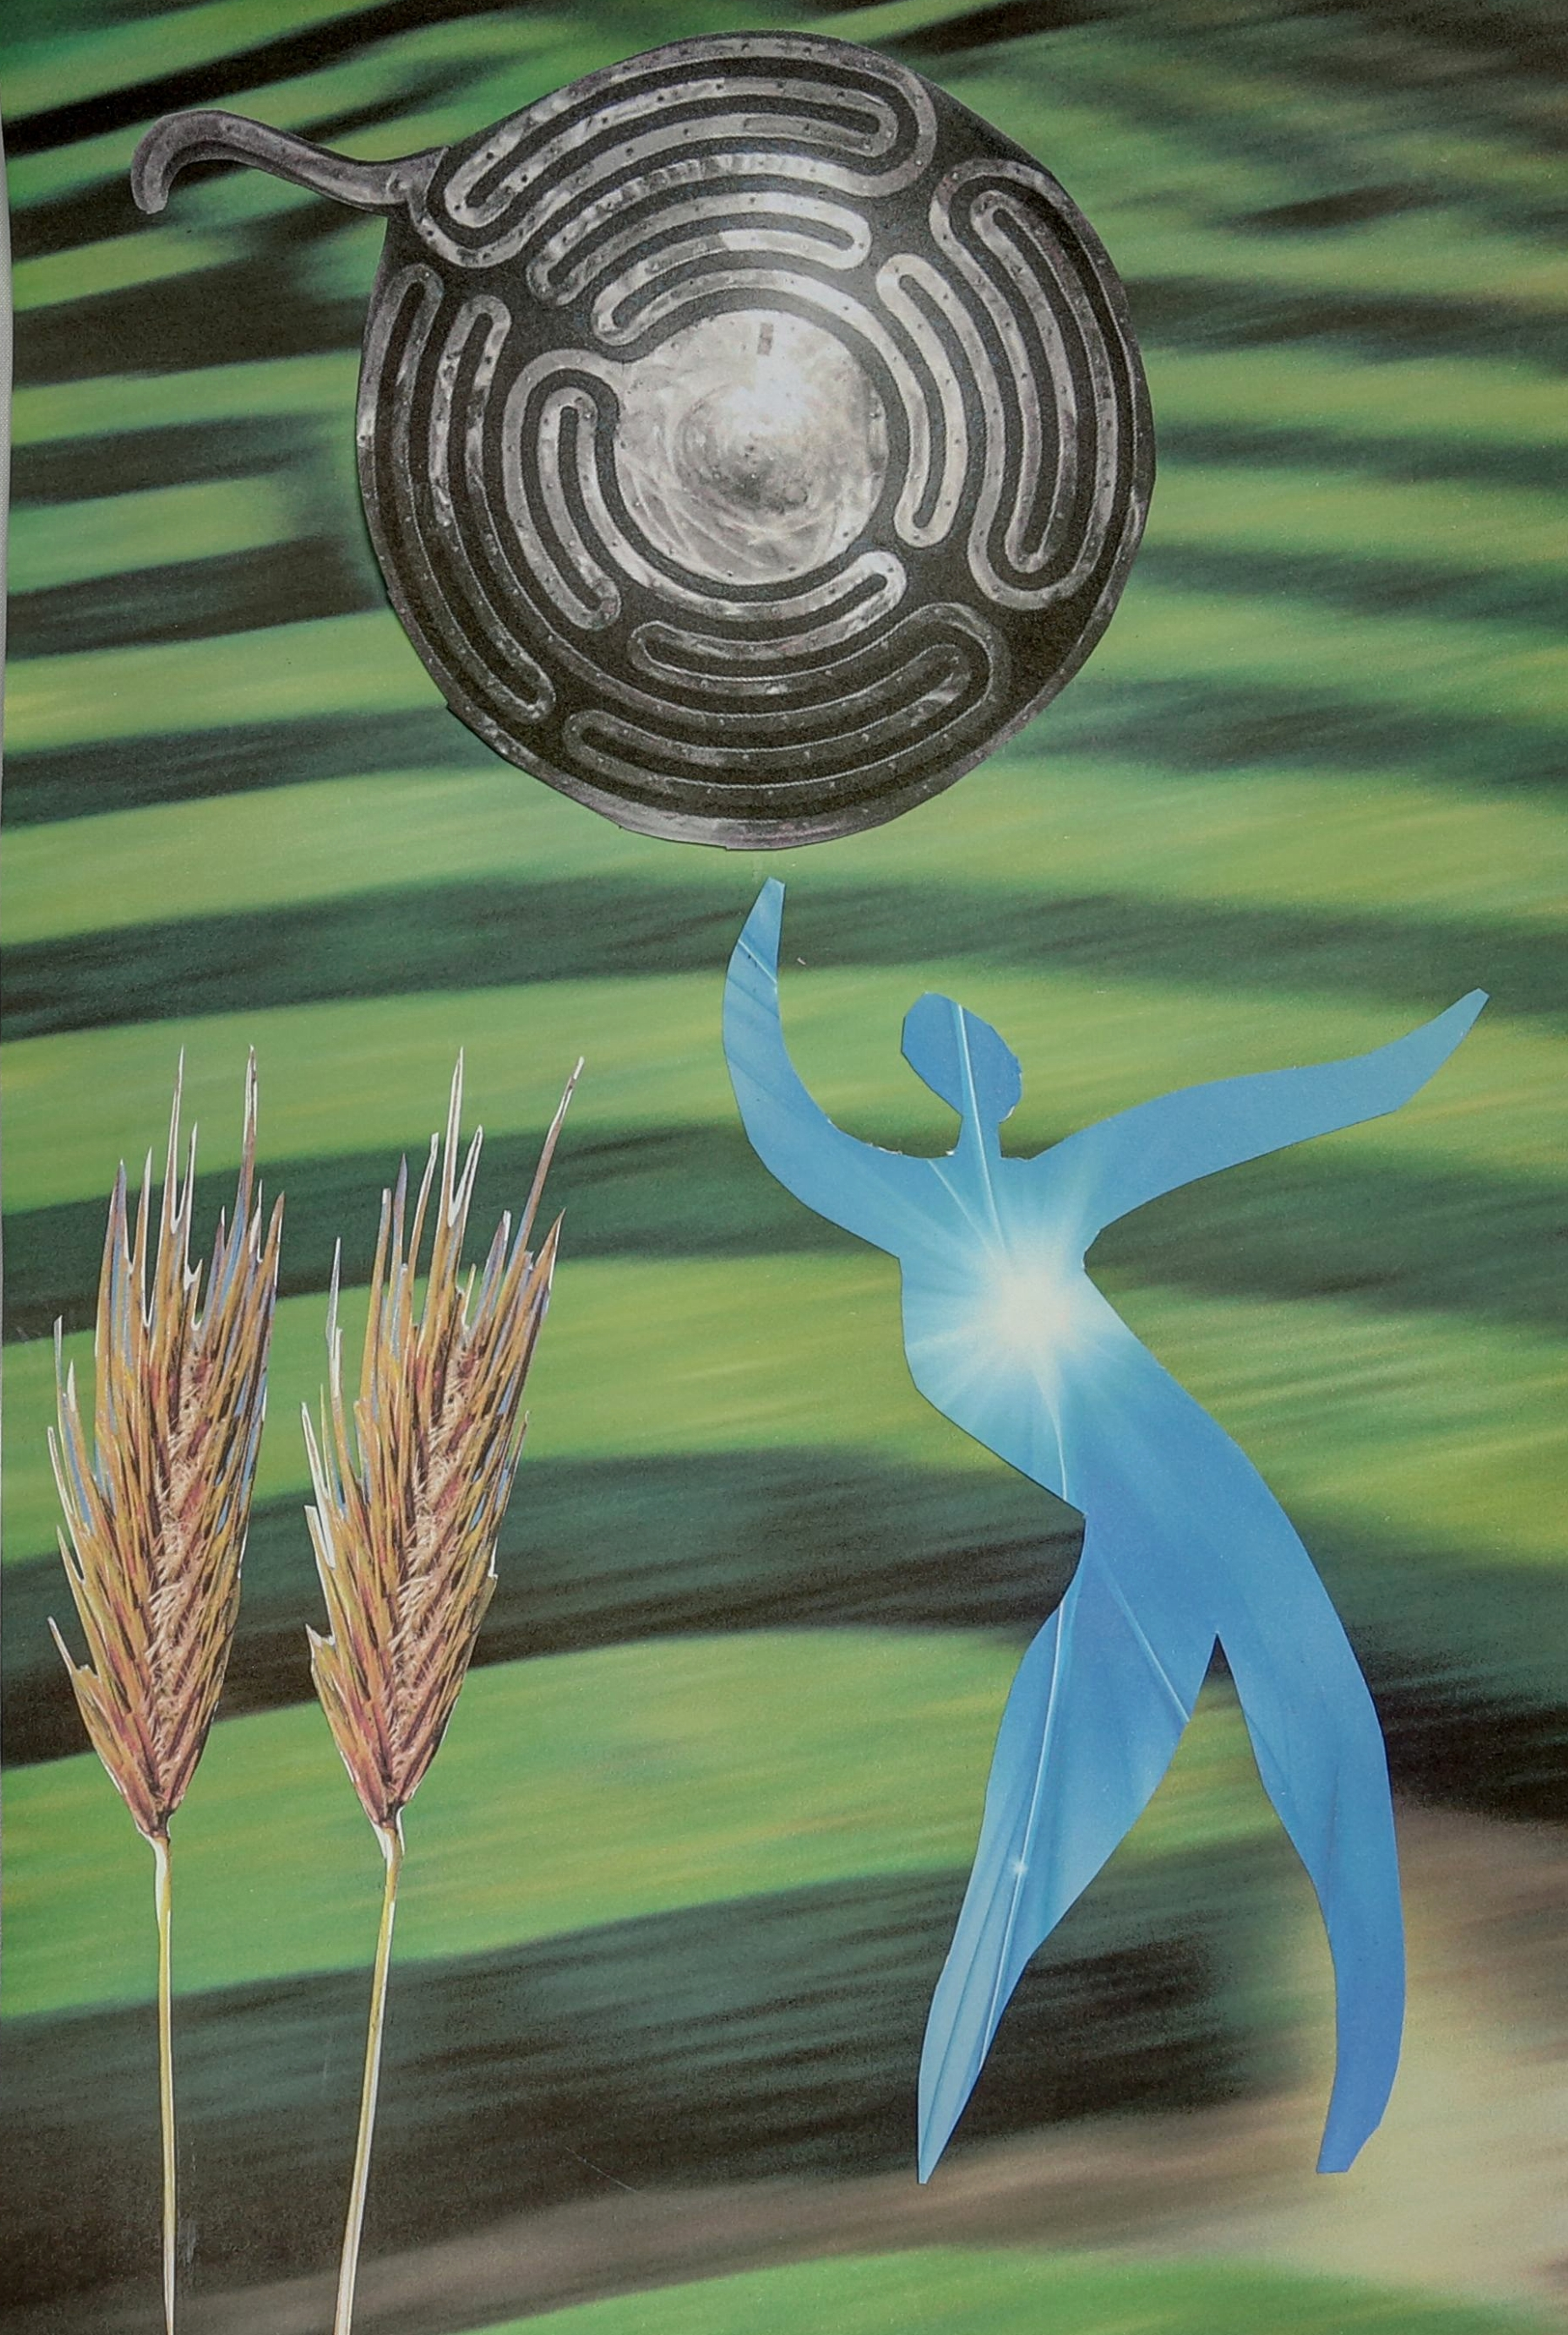 Corn mazes and labyrinths lose or find yourself profound journey collage symbolizing walking through corn maze labyrinth hedge maze buycottarizona Image collections